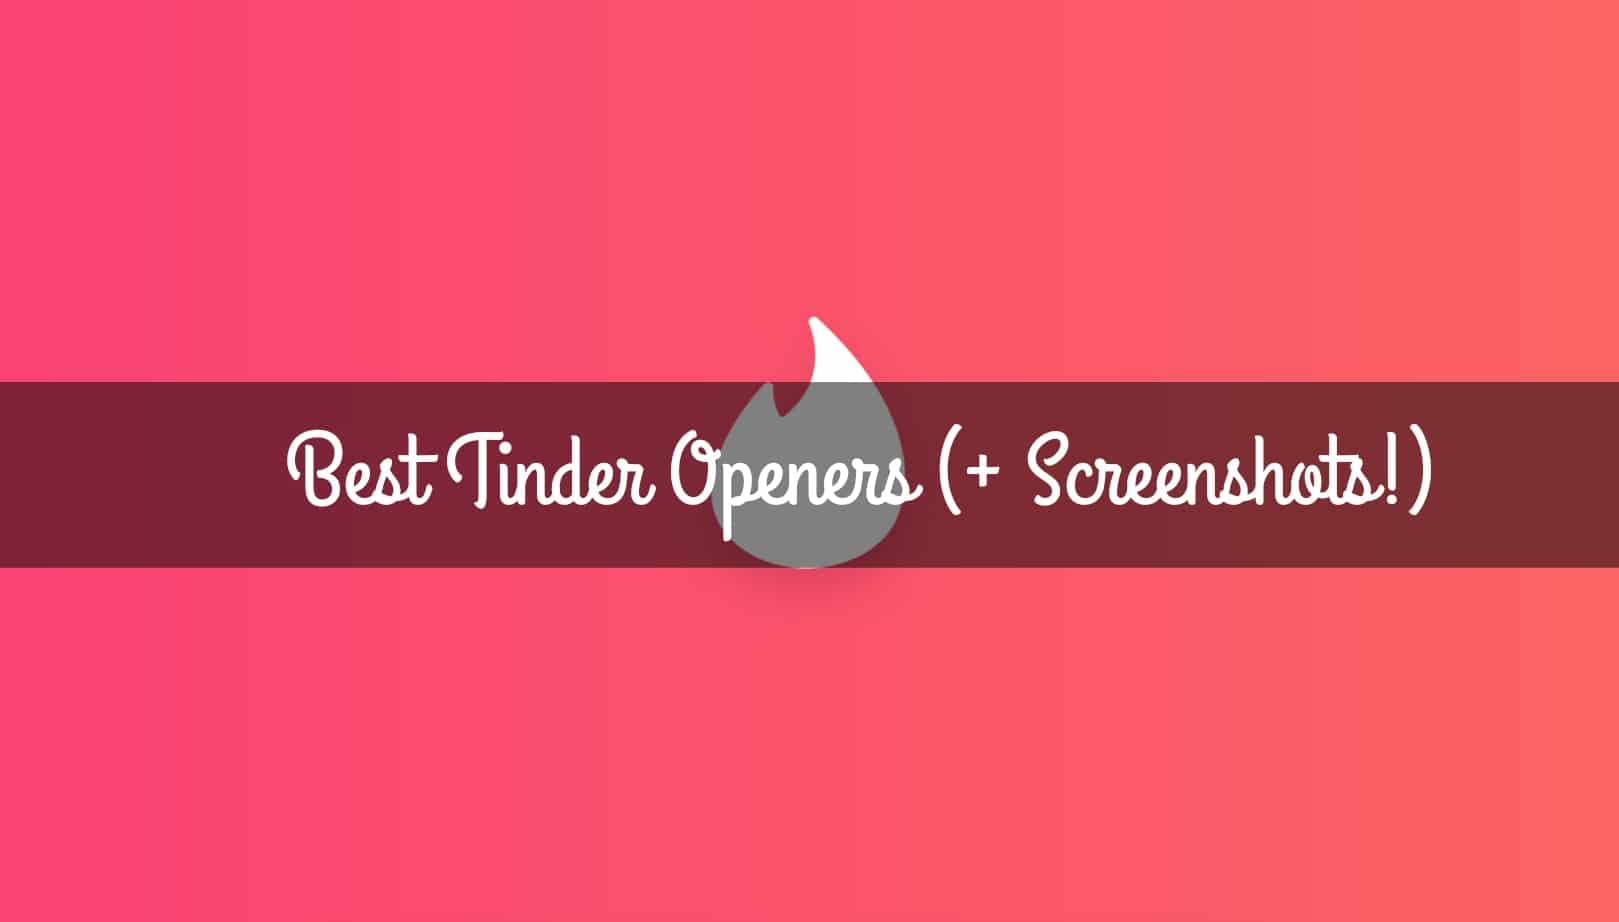 15 Best Tinder Openers (Real Screenshots + Proven to Work!) 6